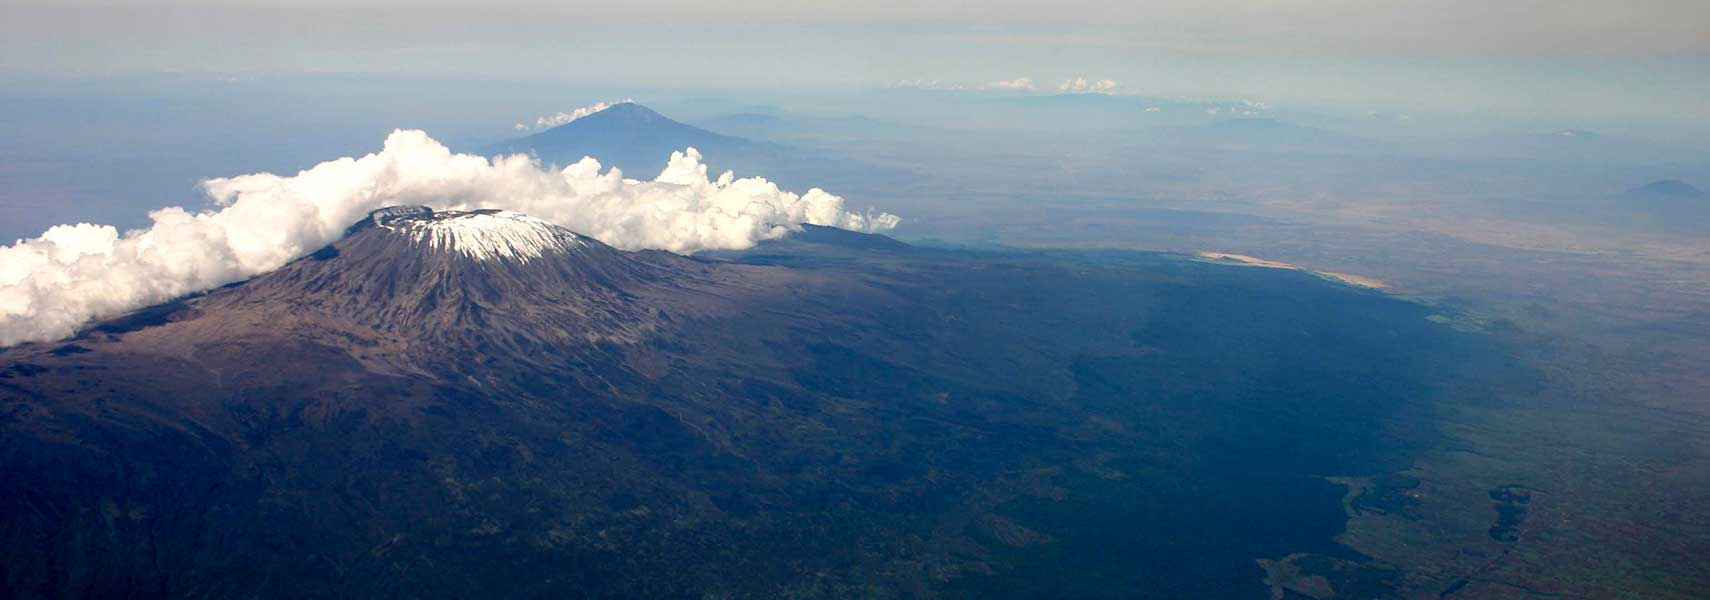 Mt Kilimanjaro On World Map.Google Map Of Mount Kilimanjaro Tanzania Nations Online Project